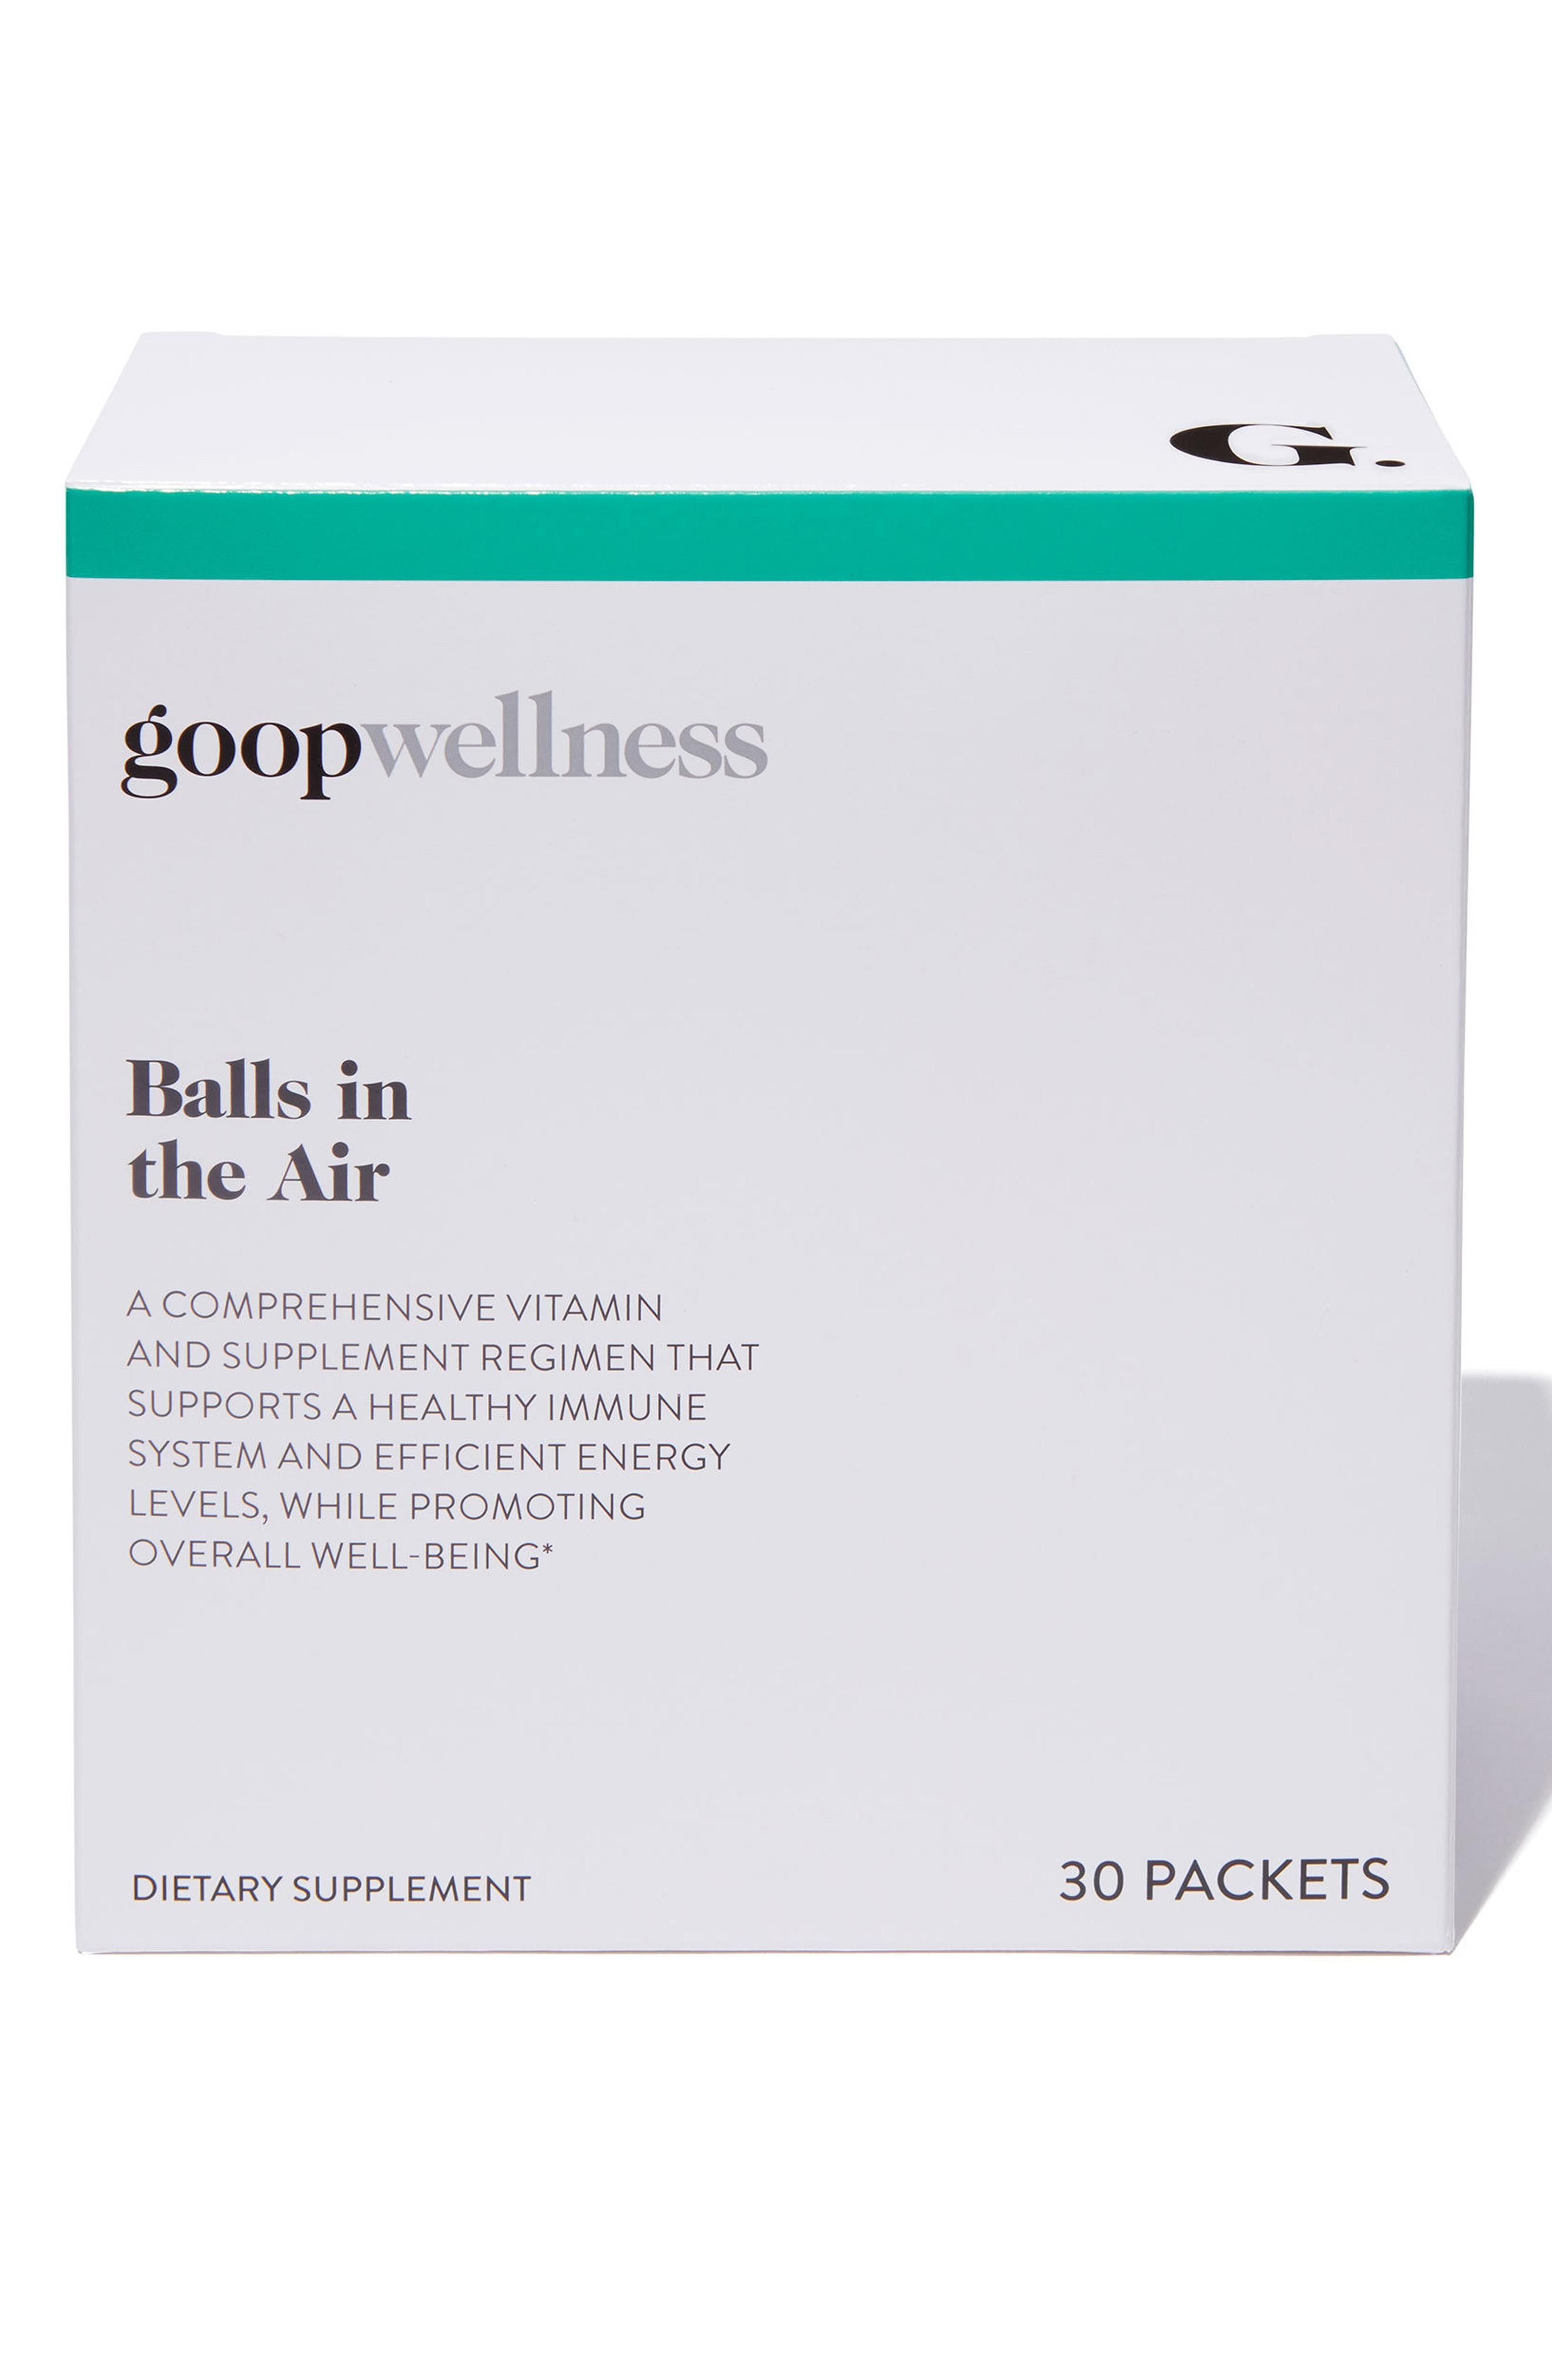 A mix of vitamins to help you keep all those balls in the air at once! Goop 0 Day Supplement Balls In The Air - $90. More info at Nordstrom.com/POP (Image: Nordstrom)